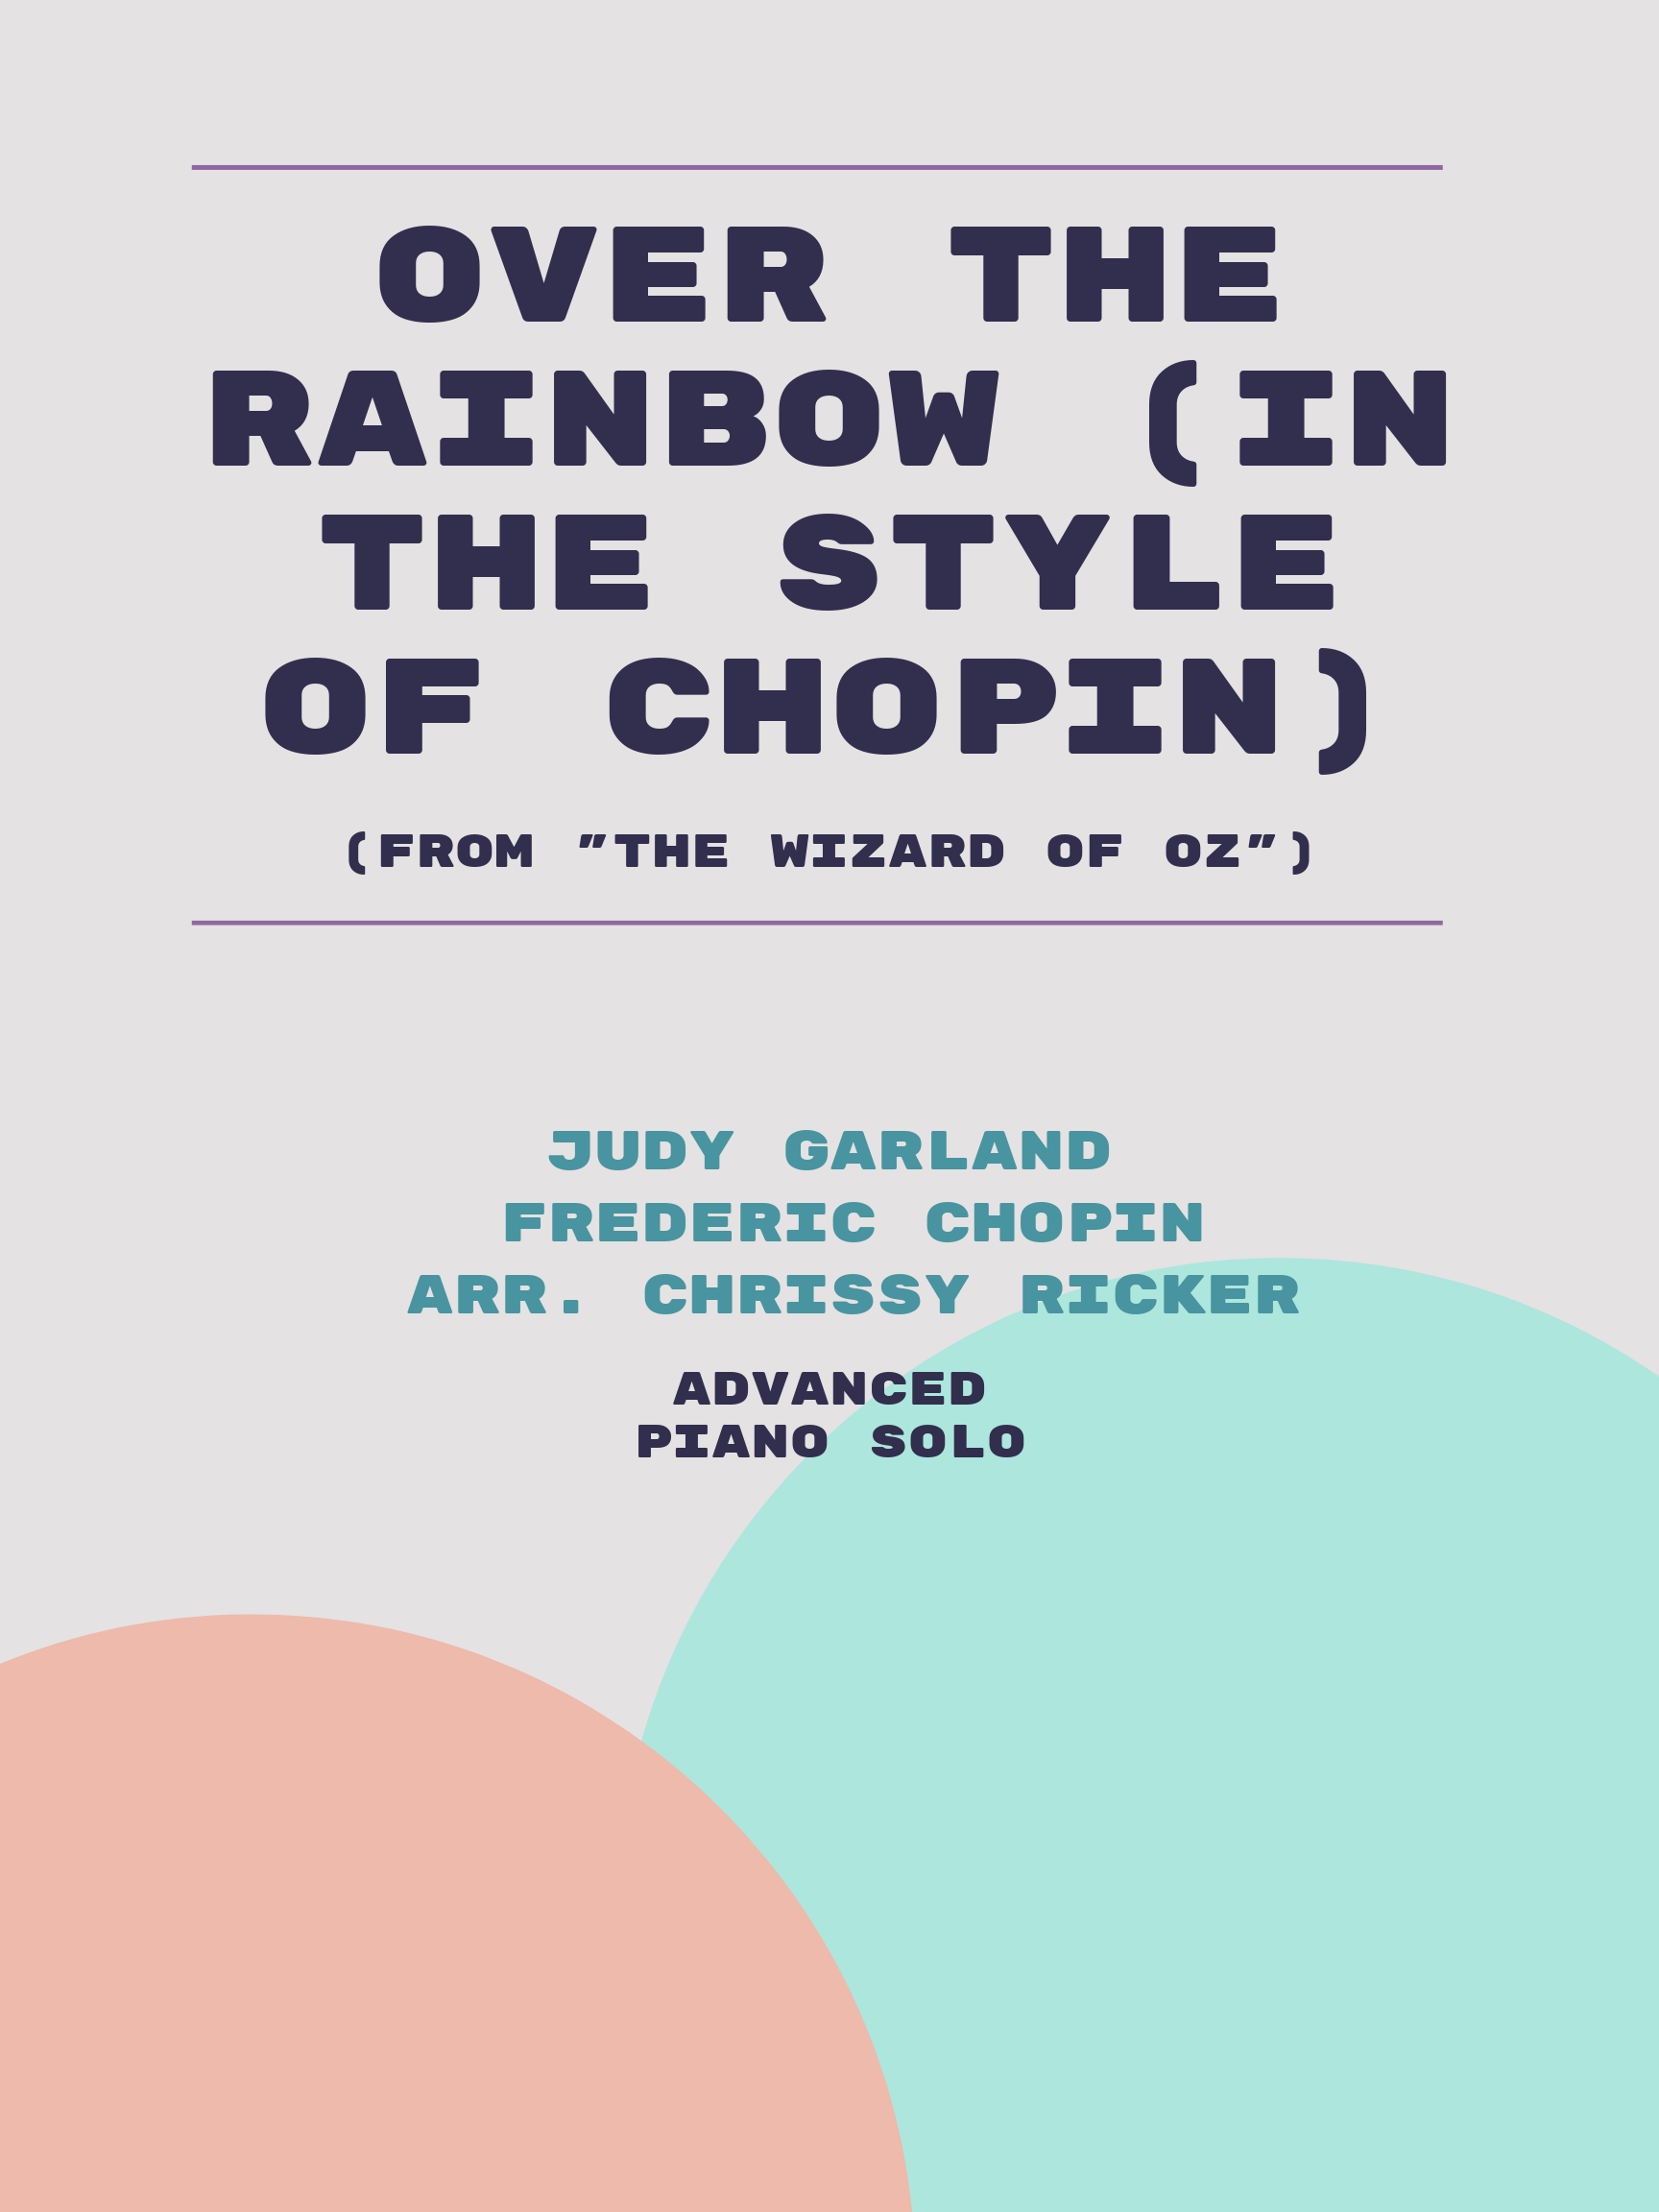 Over the Rainbow (in the style of Chopin) by Frederic Chopin, Judy Garland